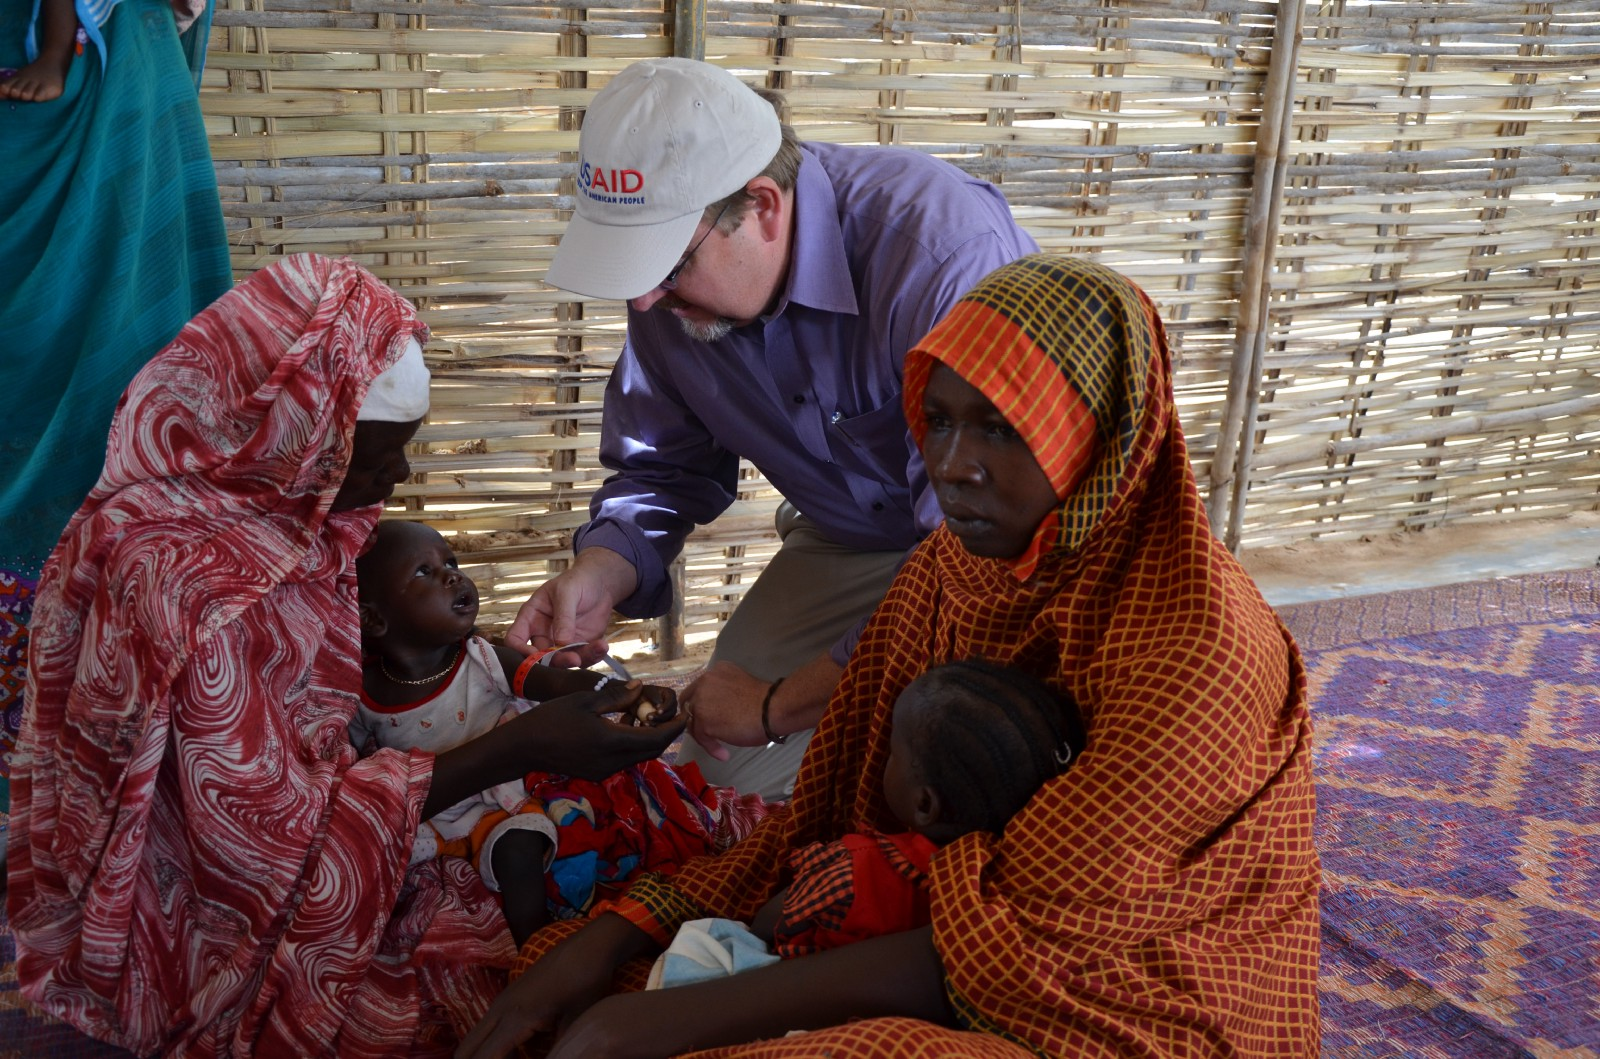 USAID worker kneels while speaking to a mother in traditional dress, holding her small child.